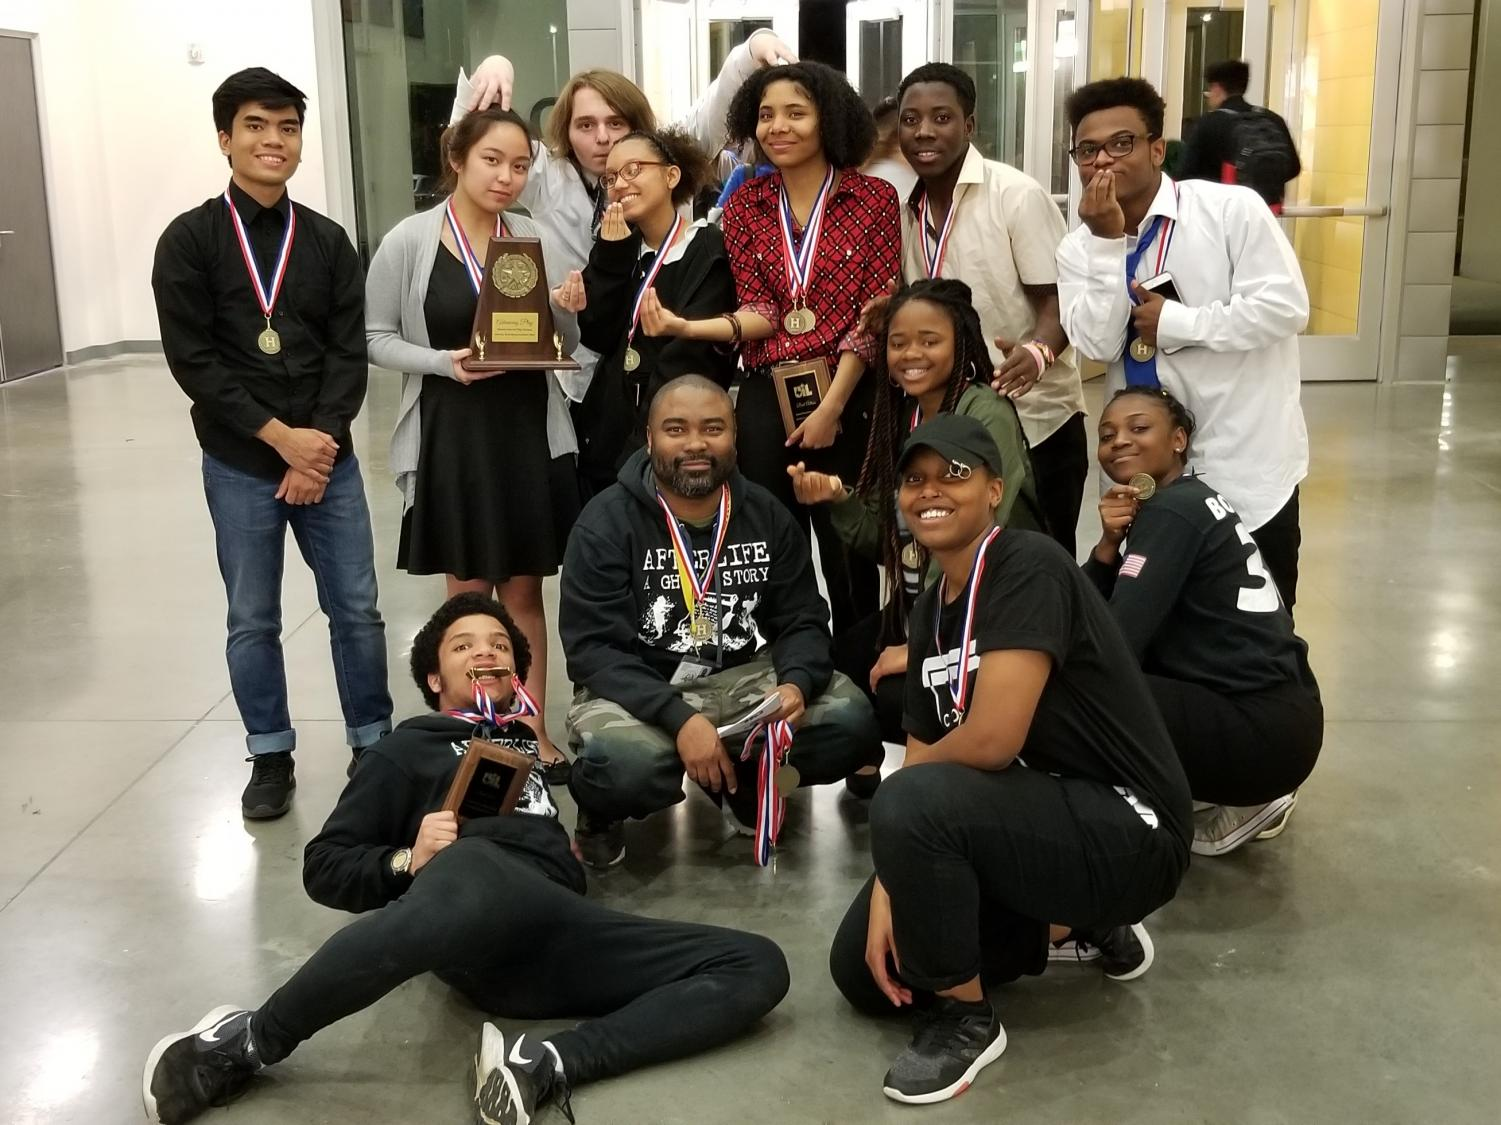 The Wisdom Theater Company took home the District 24-5A UIL One Act Play Championship with their version of